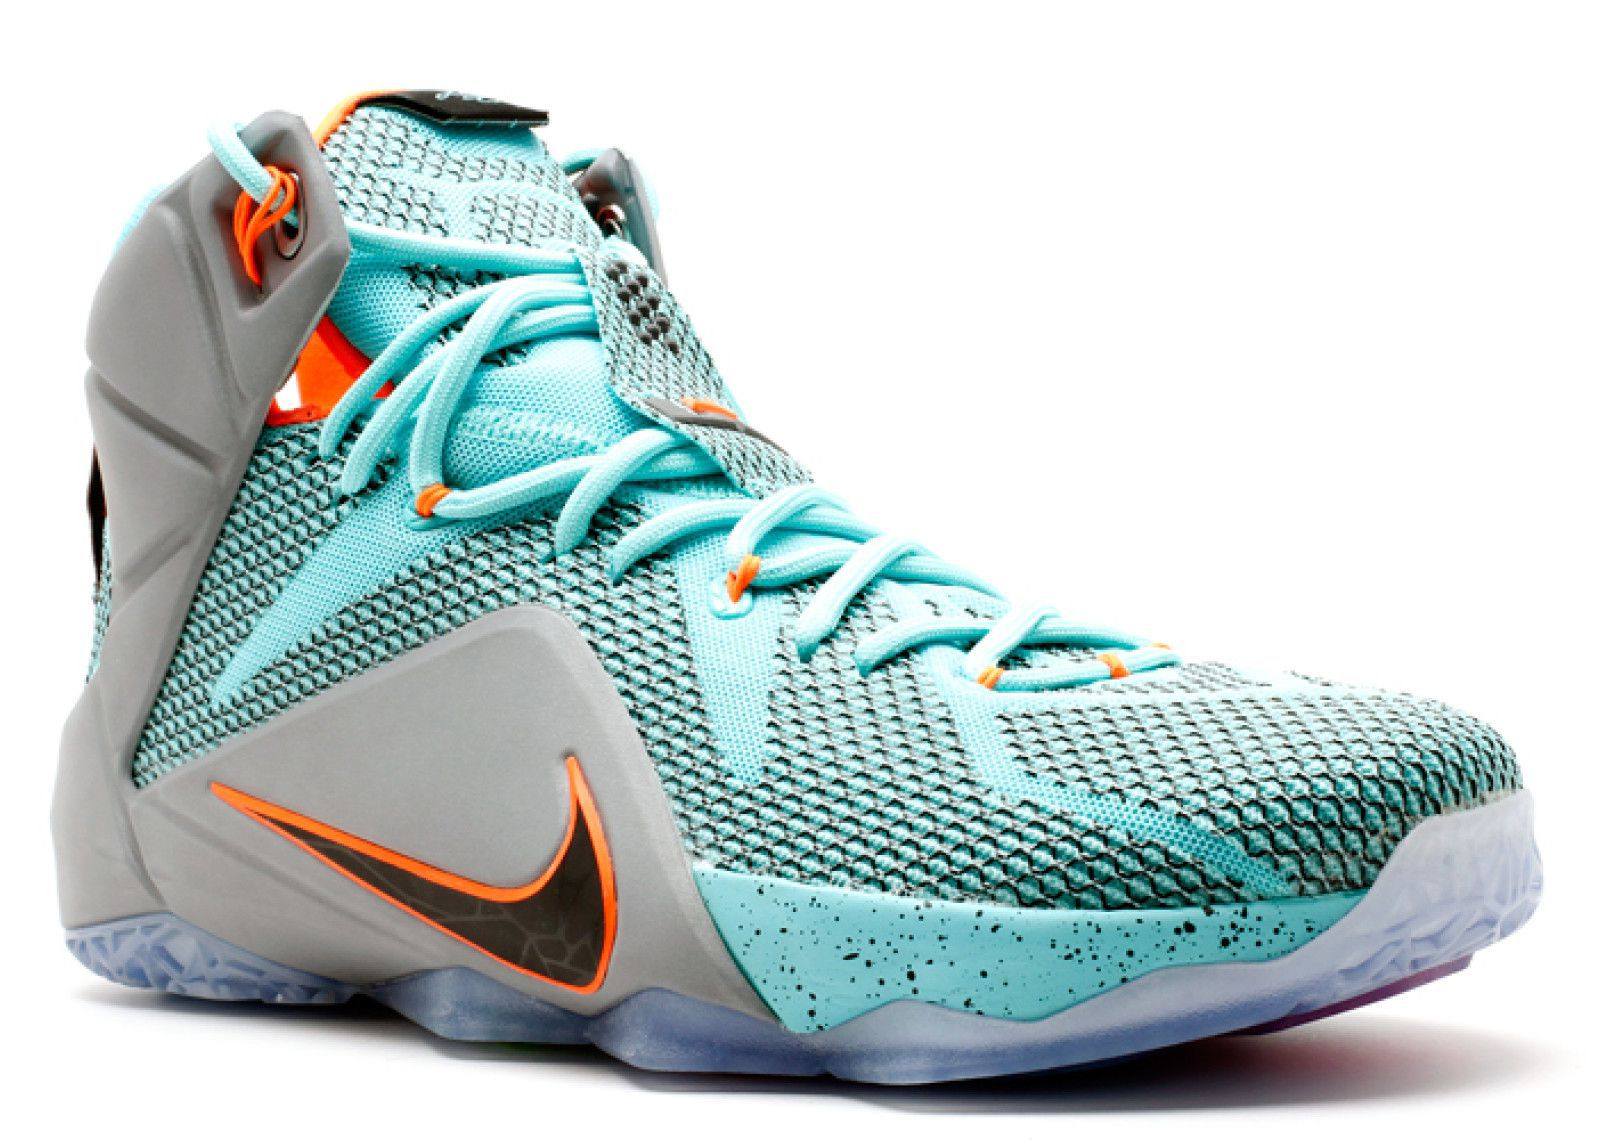 low priced 3524a 65244 inexpensive lebron 12 orange and green decor 63fa1 6fe03